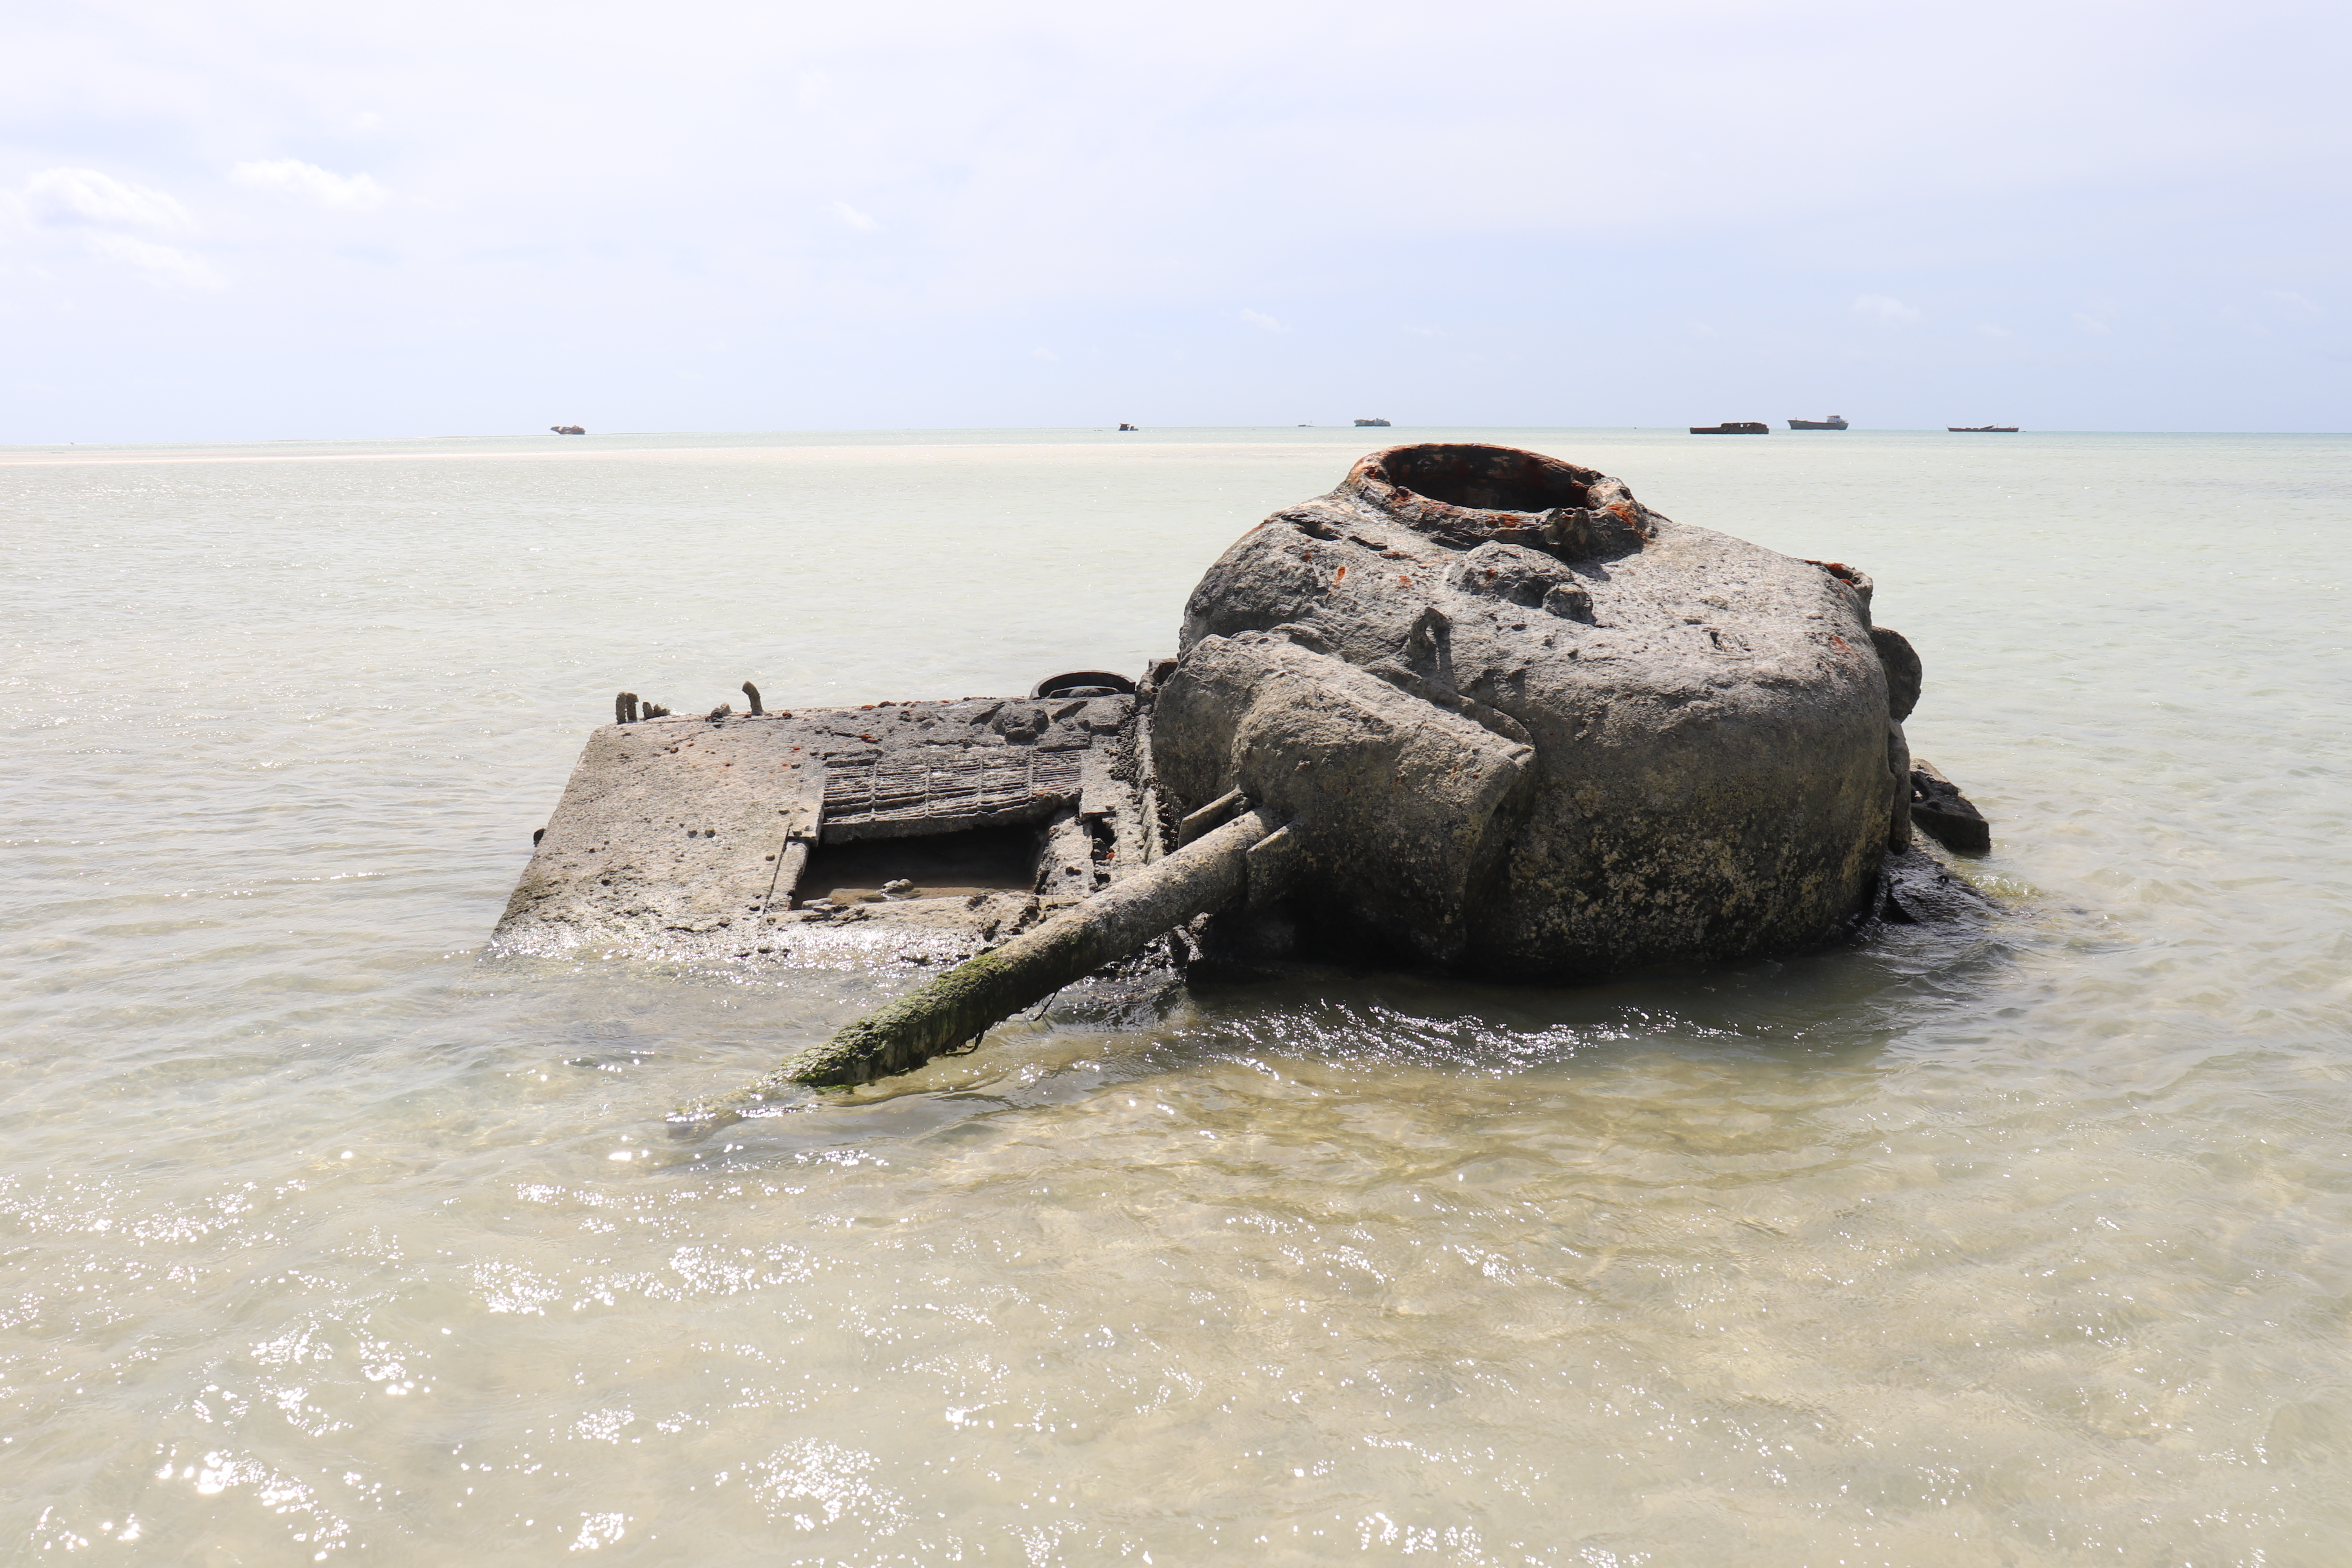 """In his BYU Education Week presentation, """"Sacred Relics of the Restoration,"""" Casey Griffiths told about seeing this tank on the beach of Tarawa, an island in the Pacific Ocean. The tank was used in a bloody battle between U.S. Marines and the Japanese in World War II."""